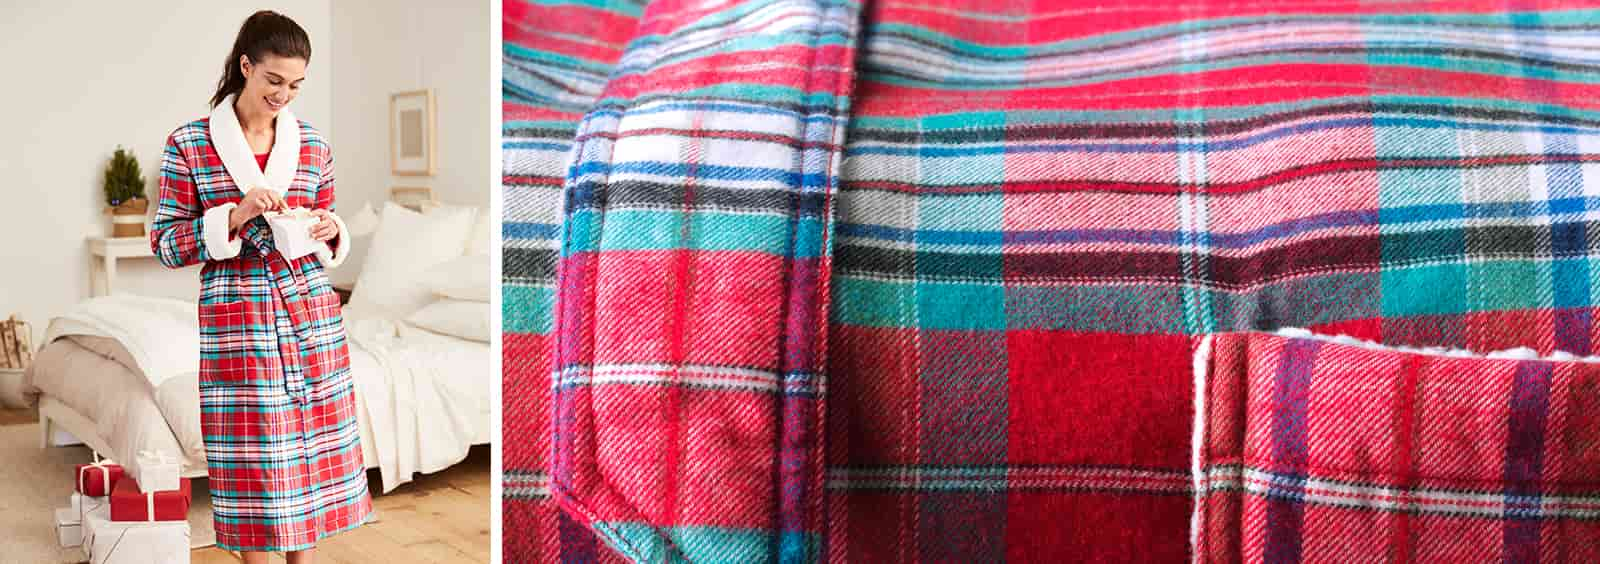 Why A Flannel Robe is the Ultimate Cold Weather Gift | Lands' End